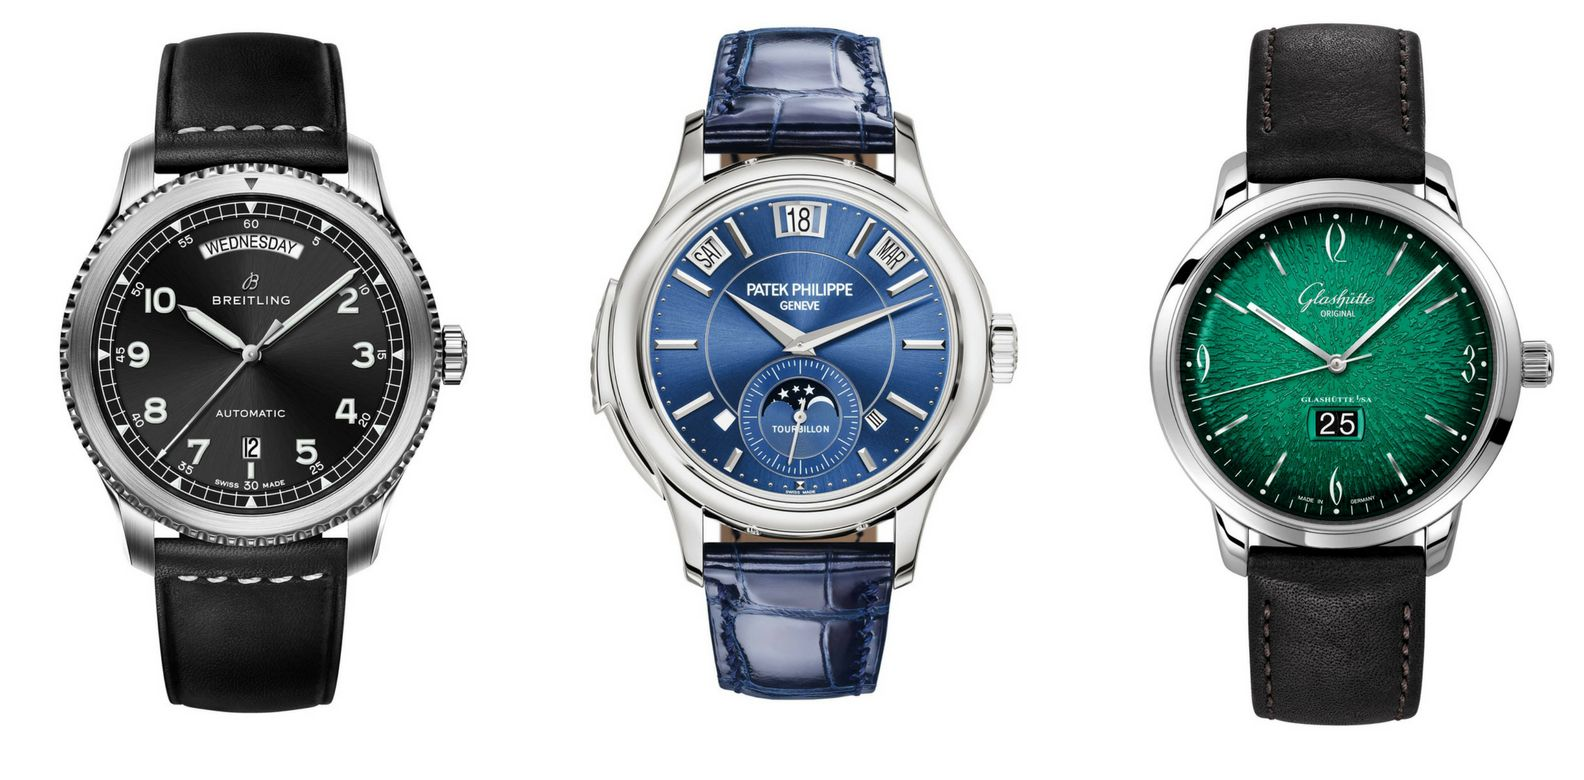 It's A Date: 12 Luxury Watches With Date Functions